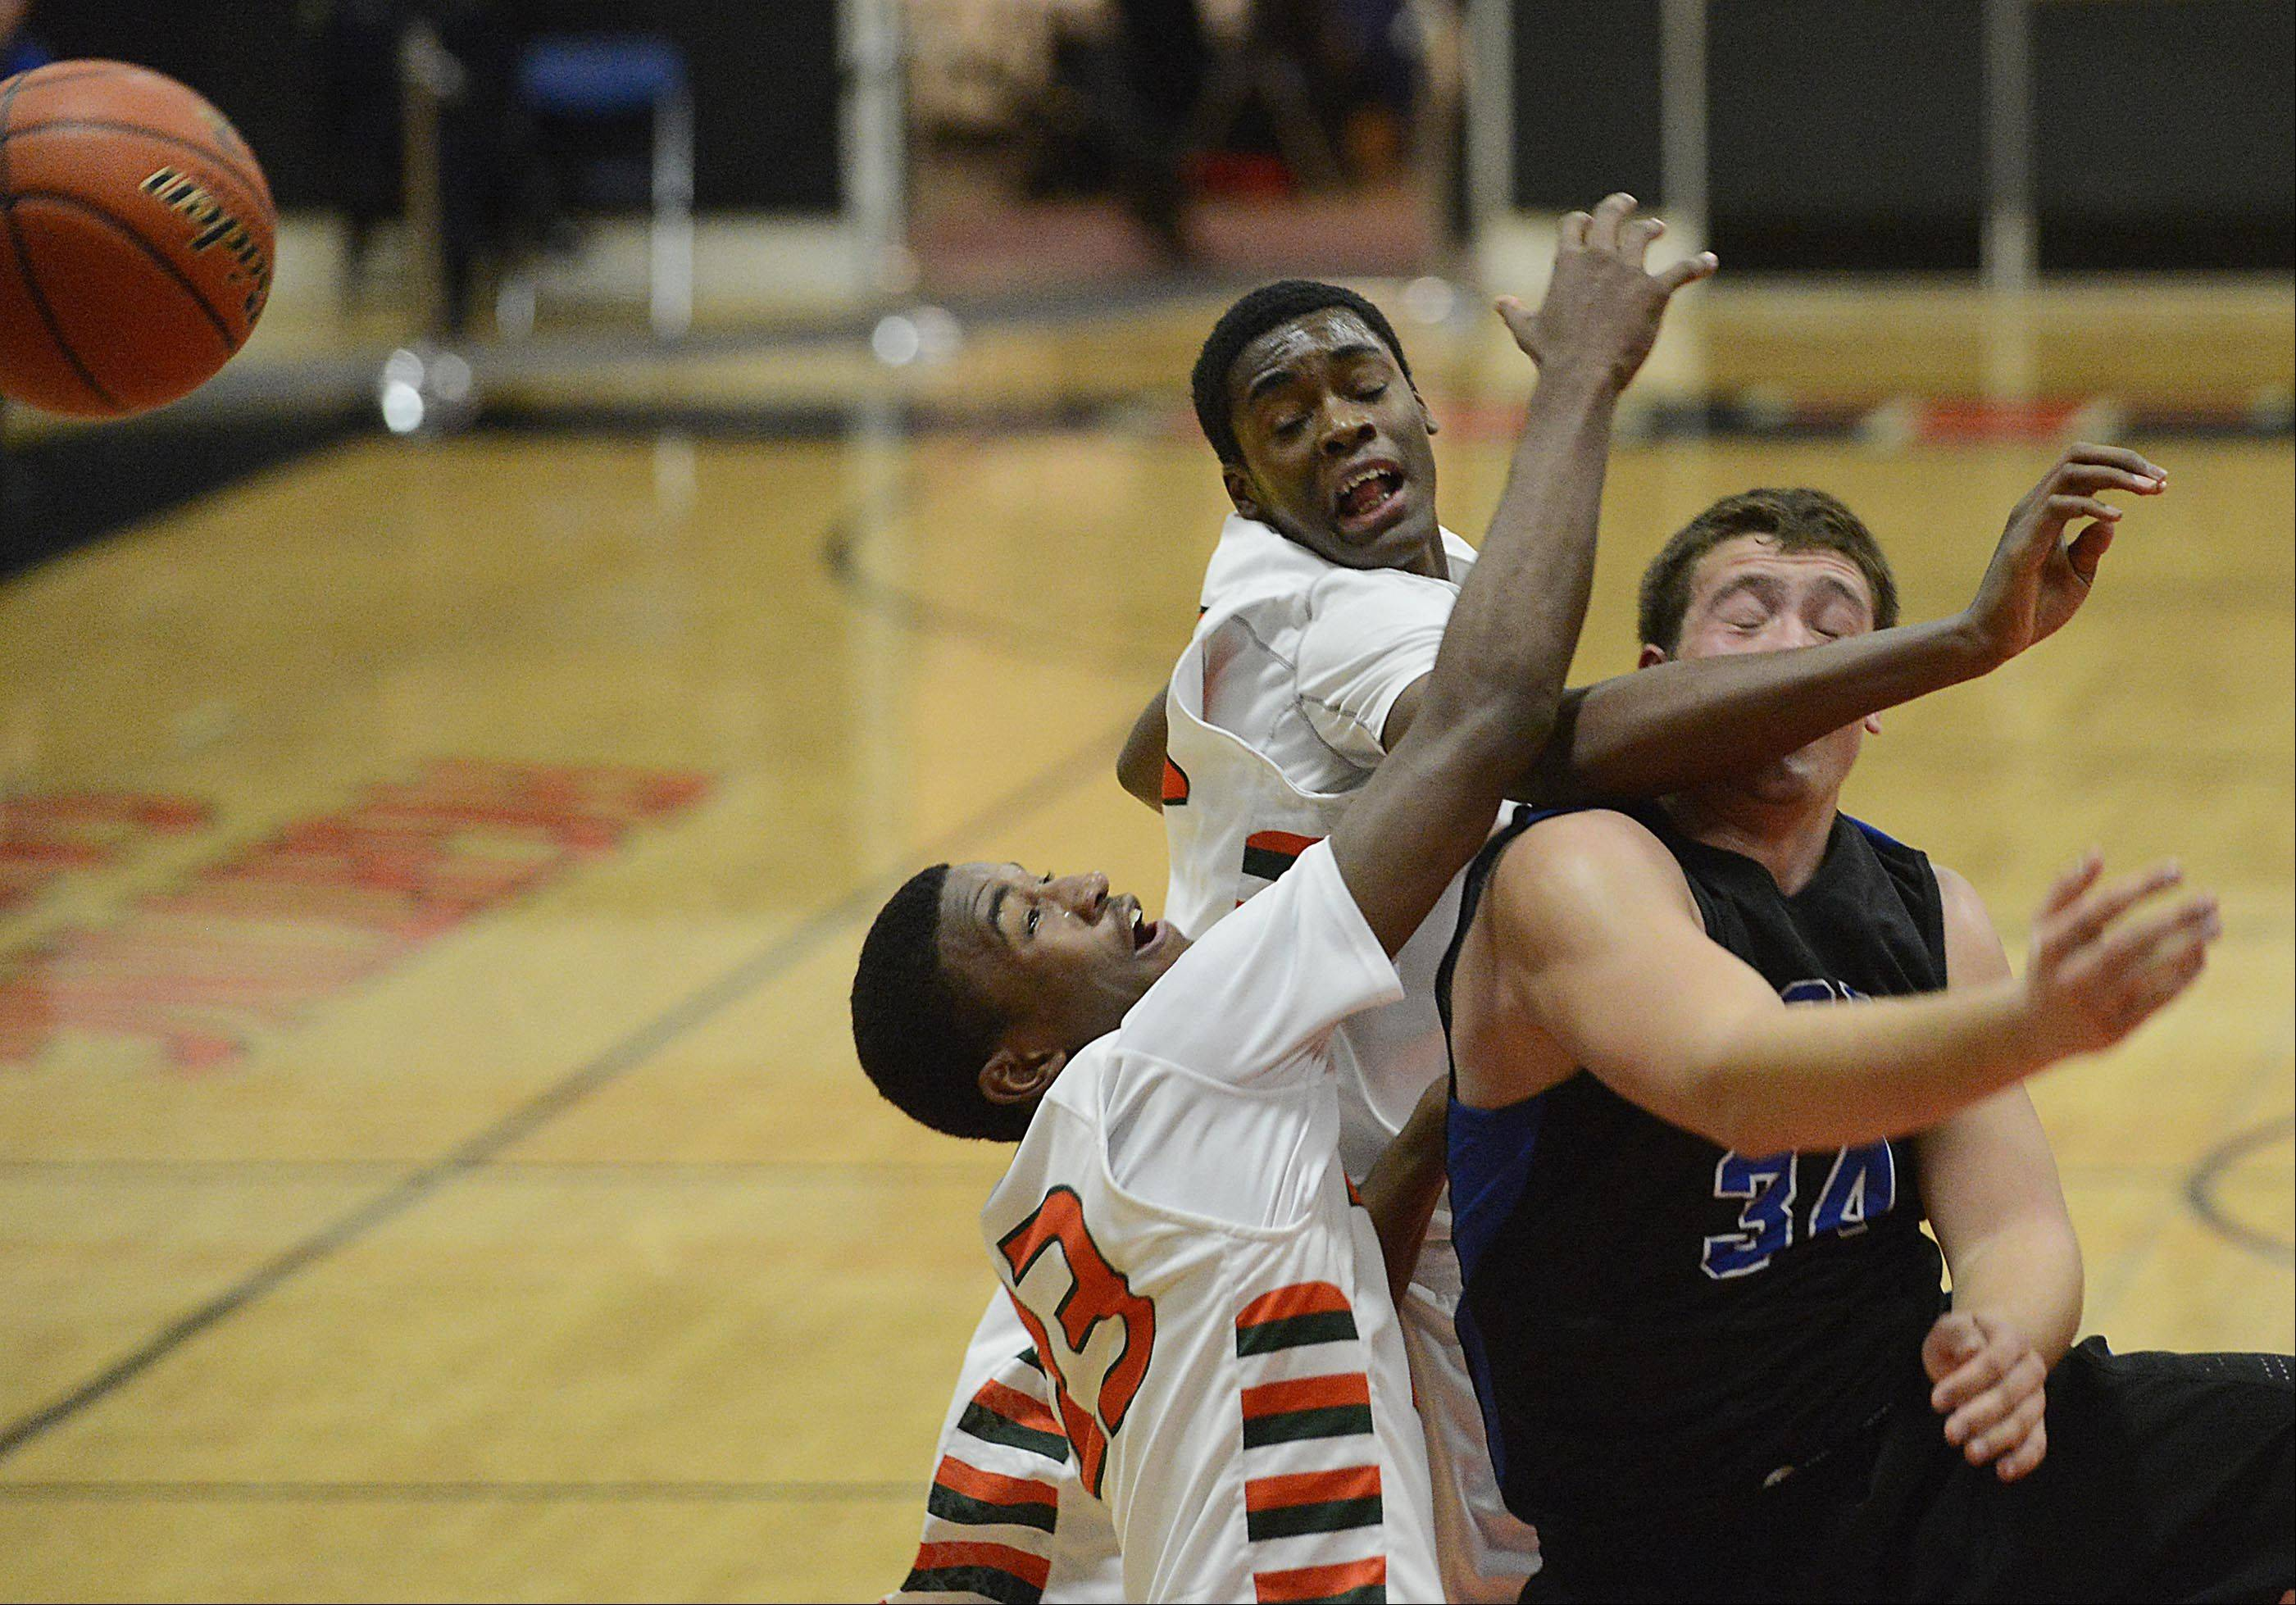 St. Charles North's Garrett Johnson and Plainfield East's Aaron Jordan and James Claar tangle Tuesday in St. Charles.